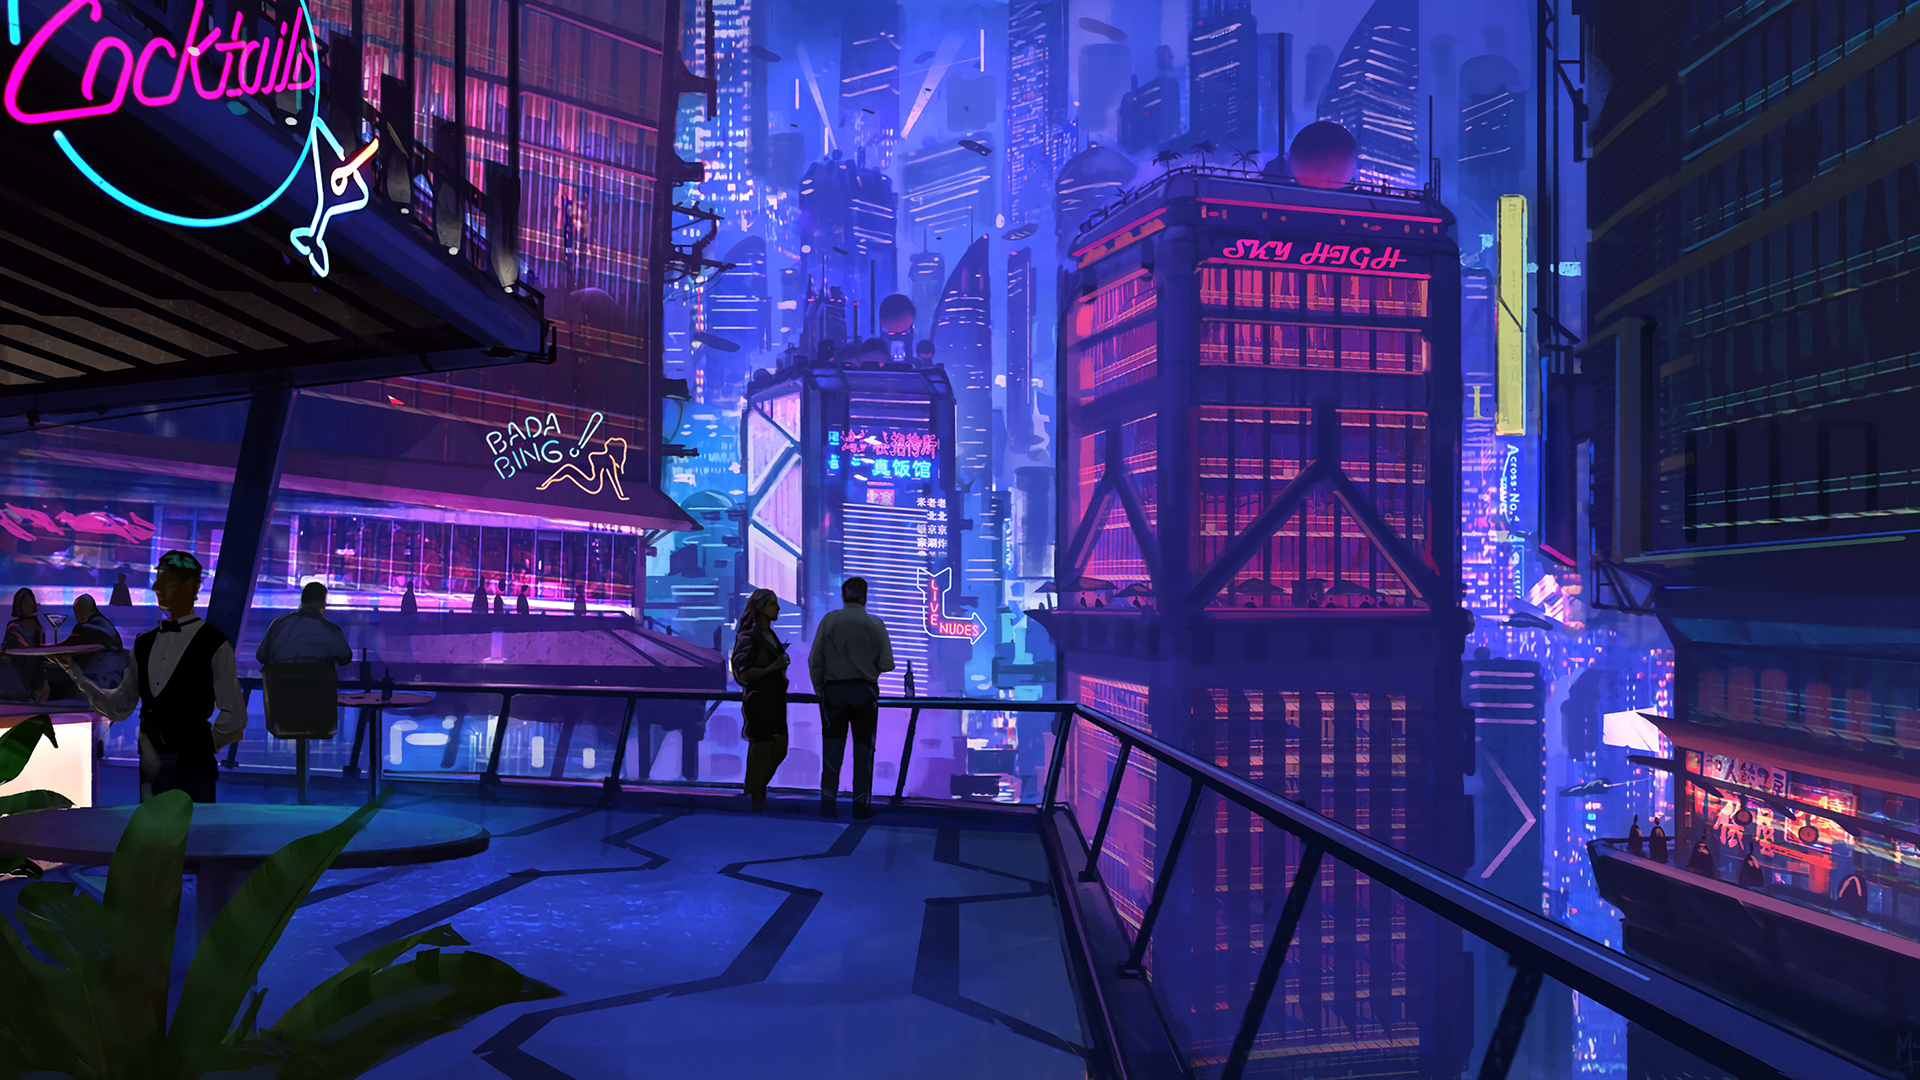 General 1920x1080 digital art cityscape cyberpunk